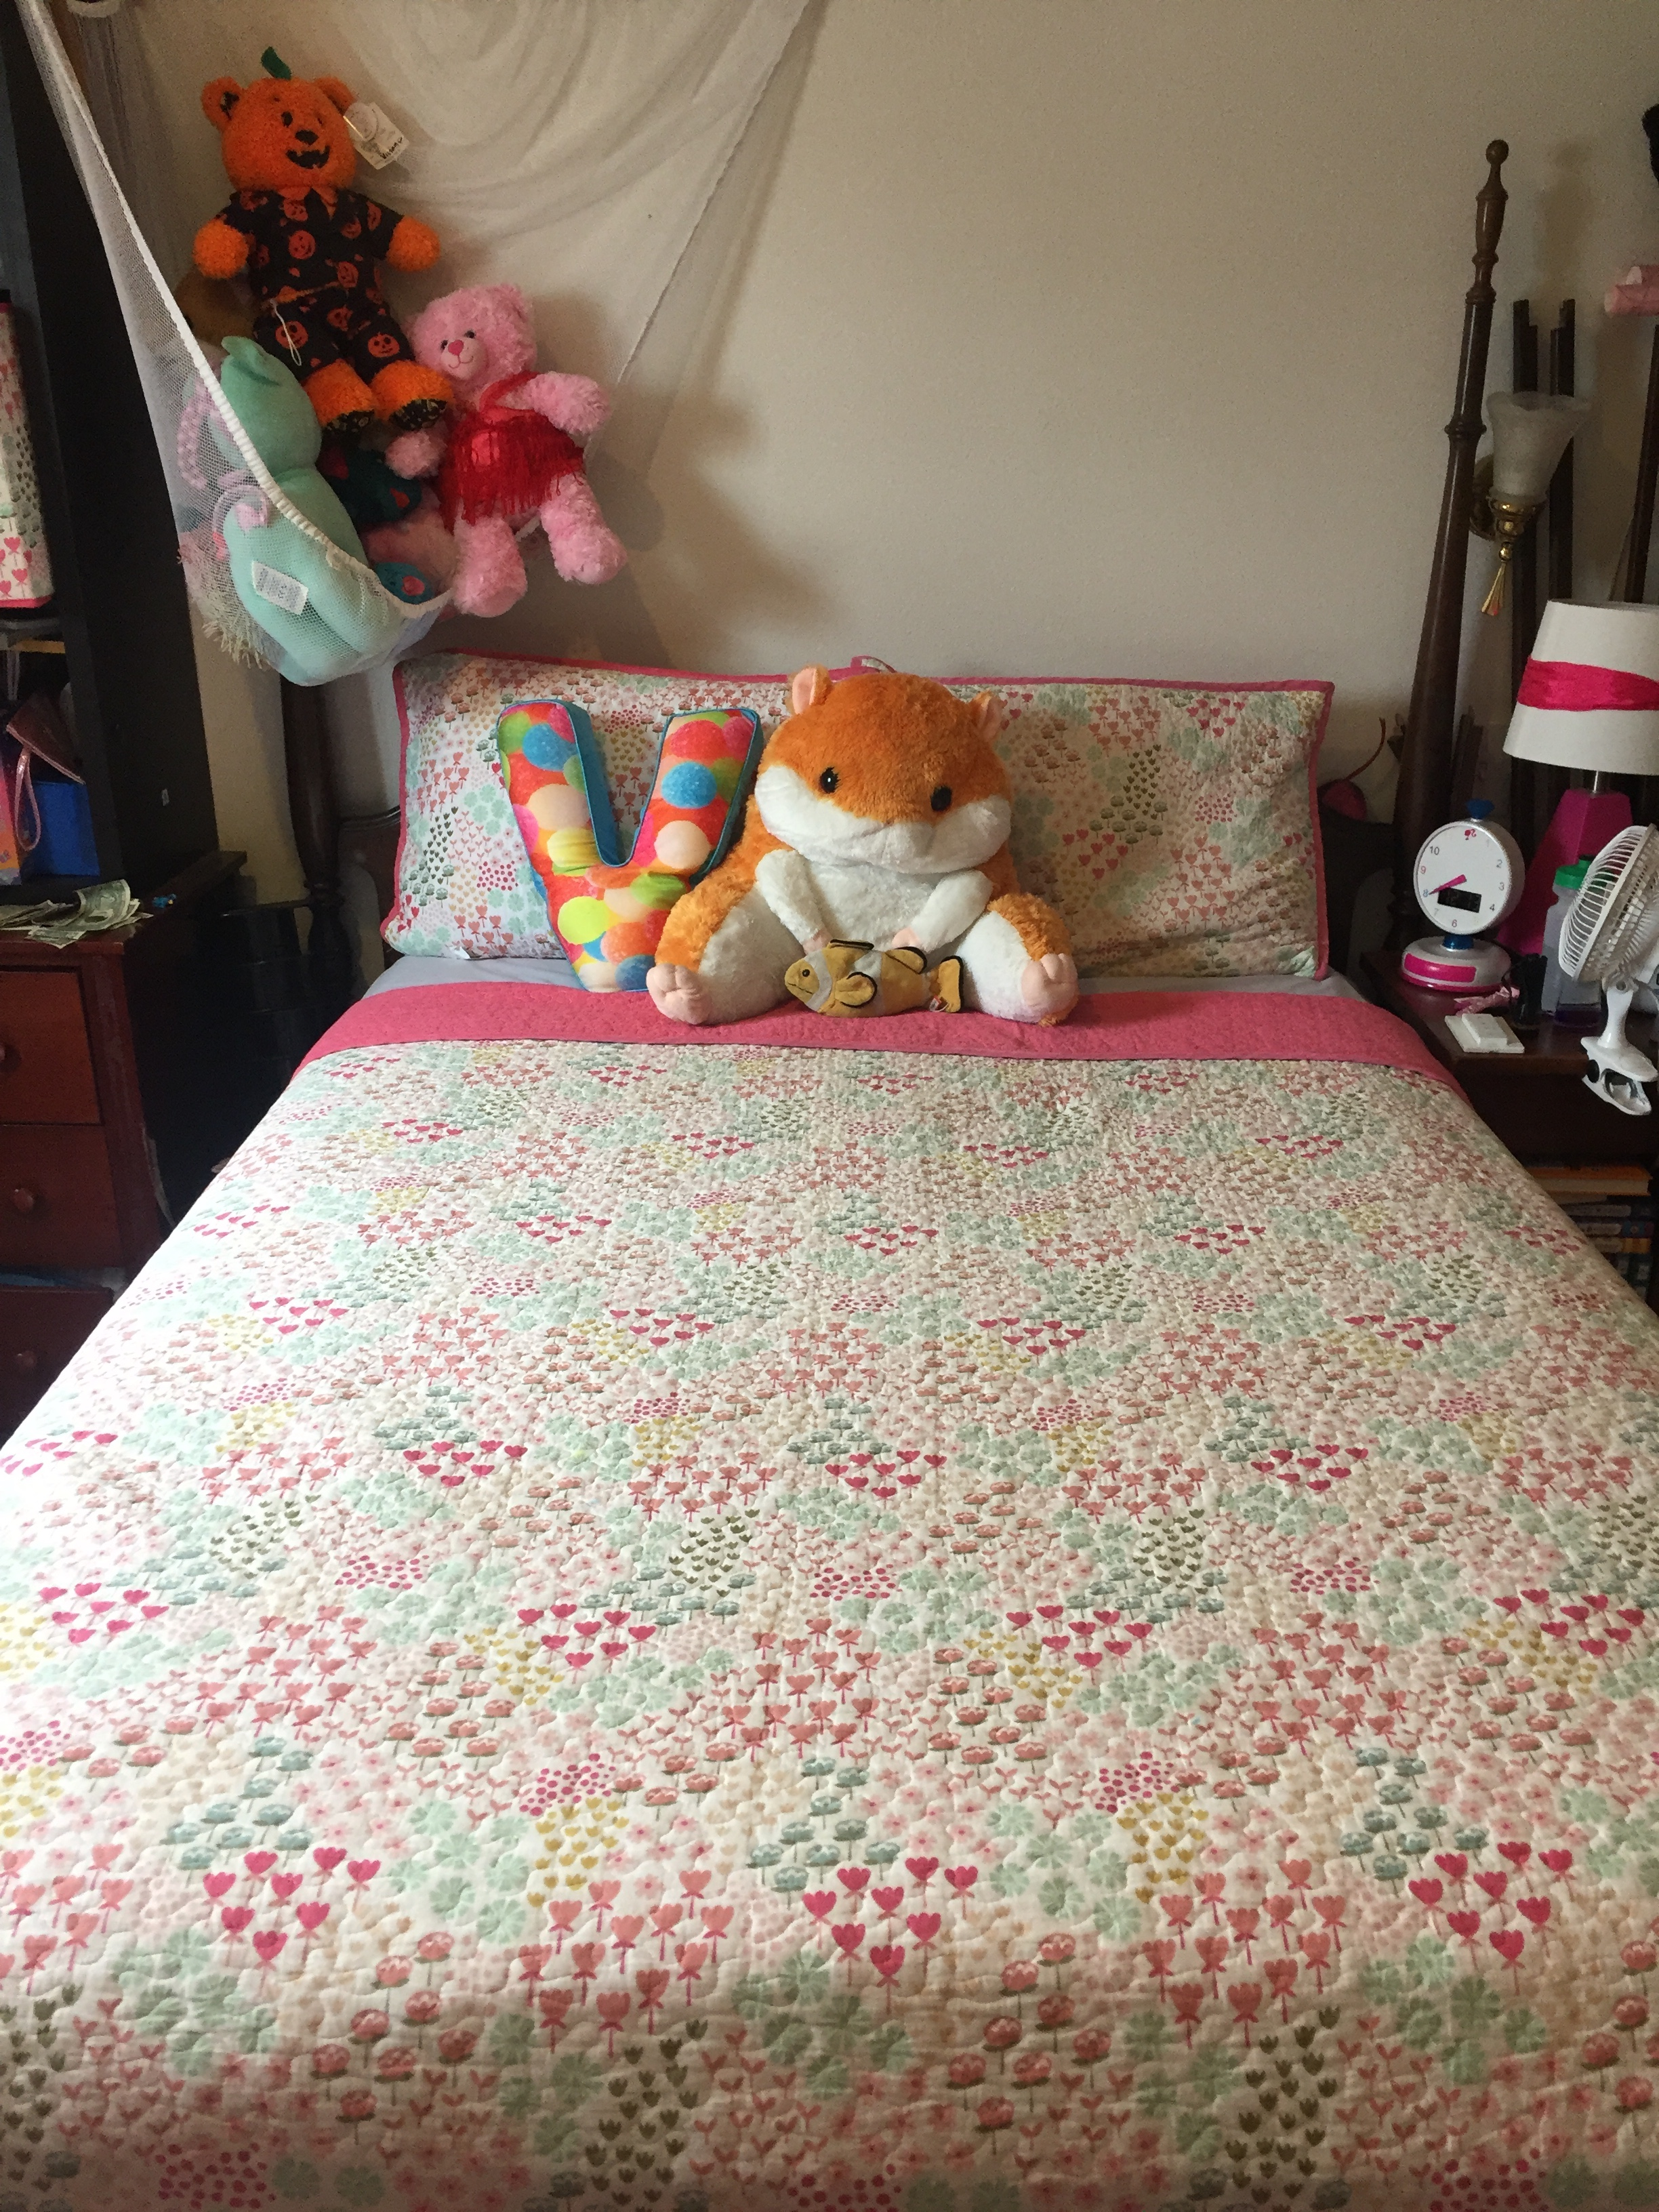 Pillowfort Fetching Florals comforter and shames from Target kids bedding decor collection